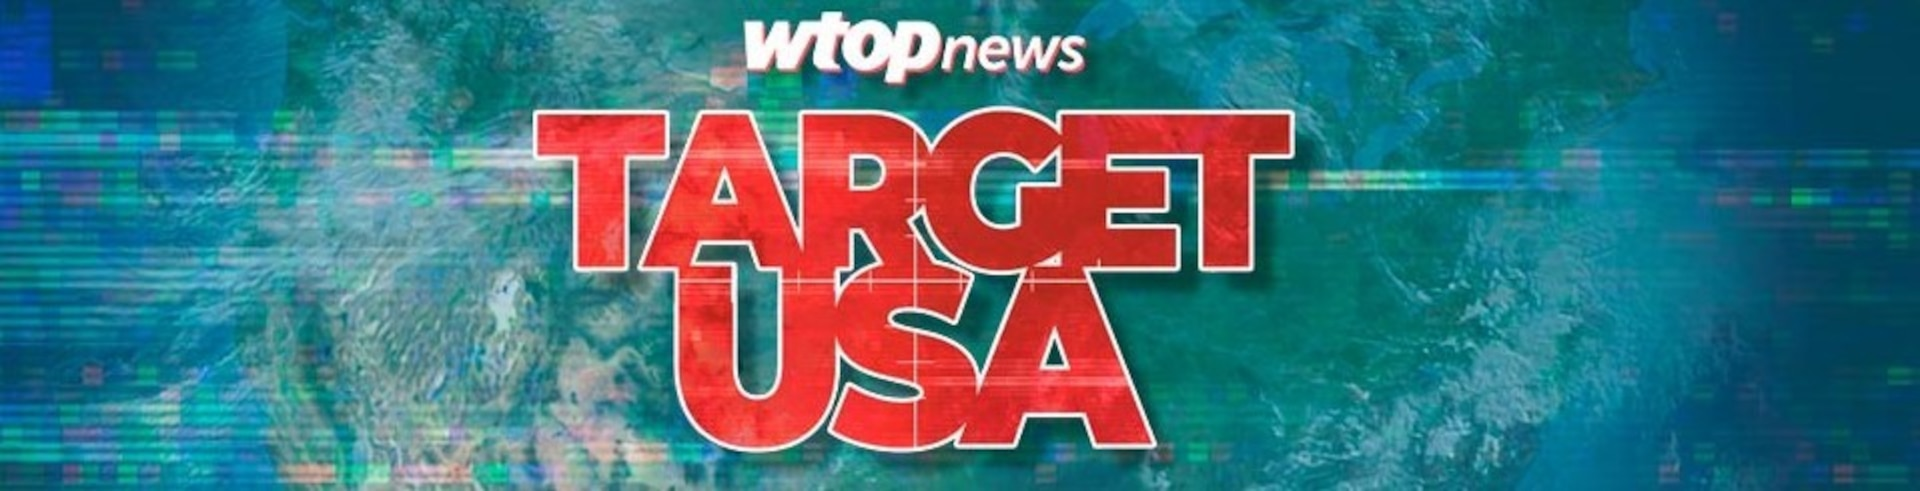 TARGET USA Director Scolese sits down with JJ Green from WTOP News